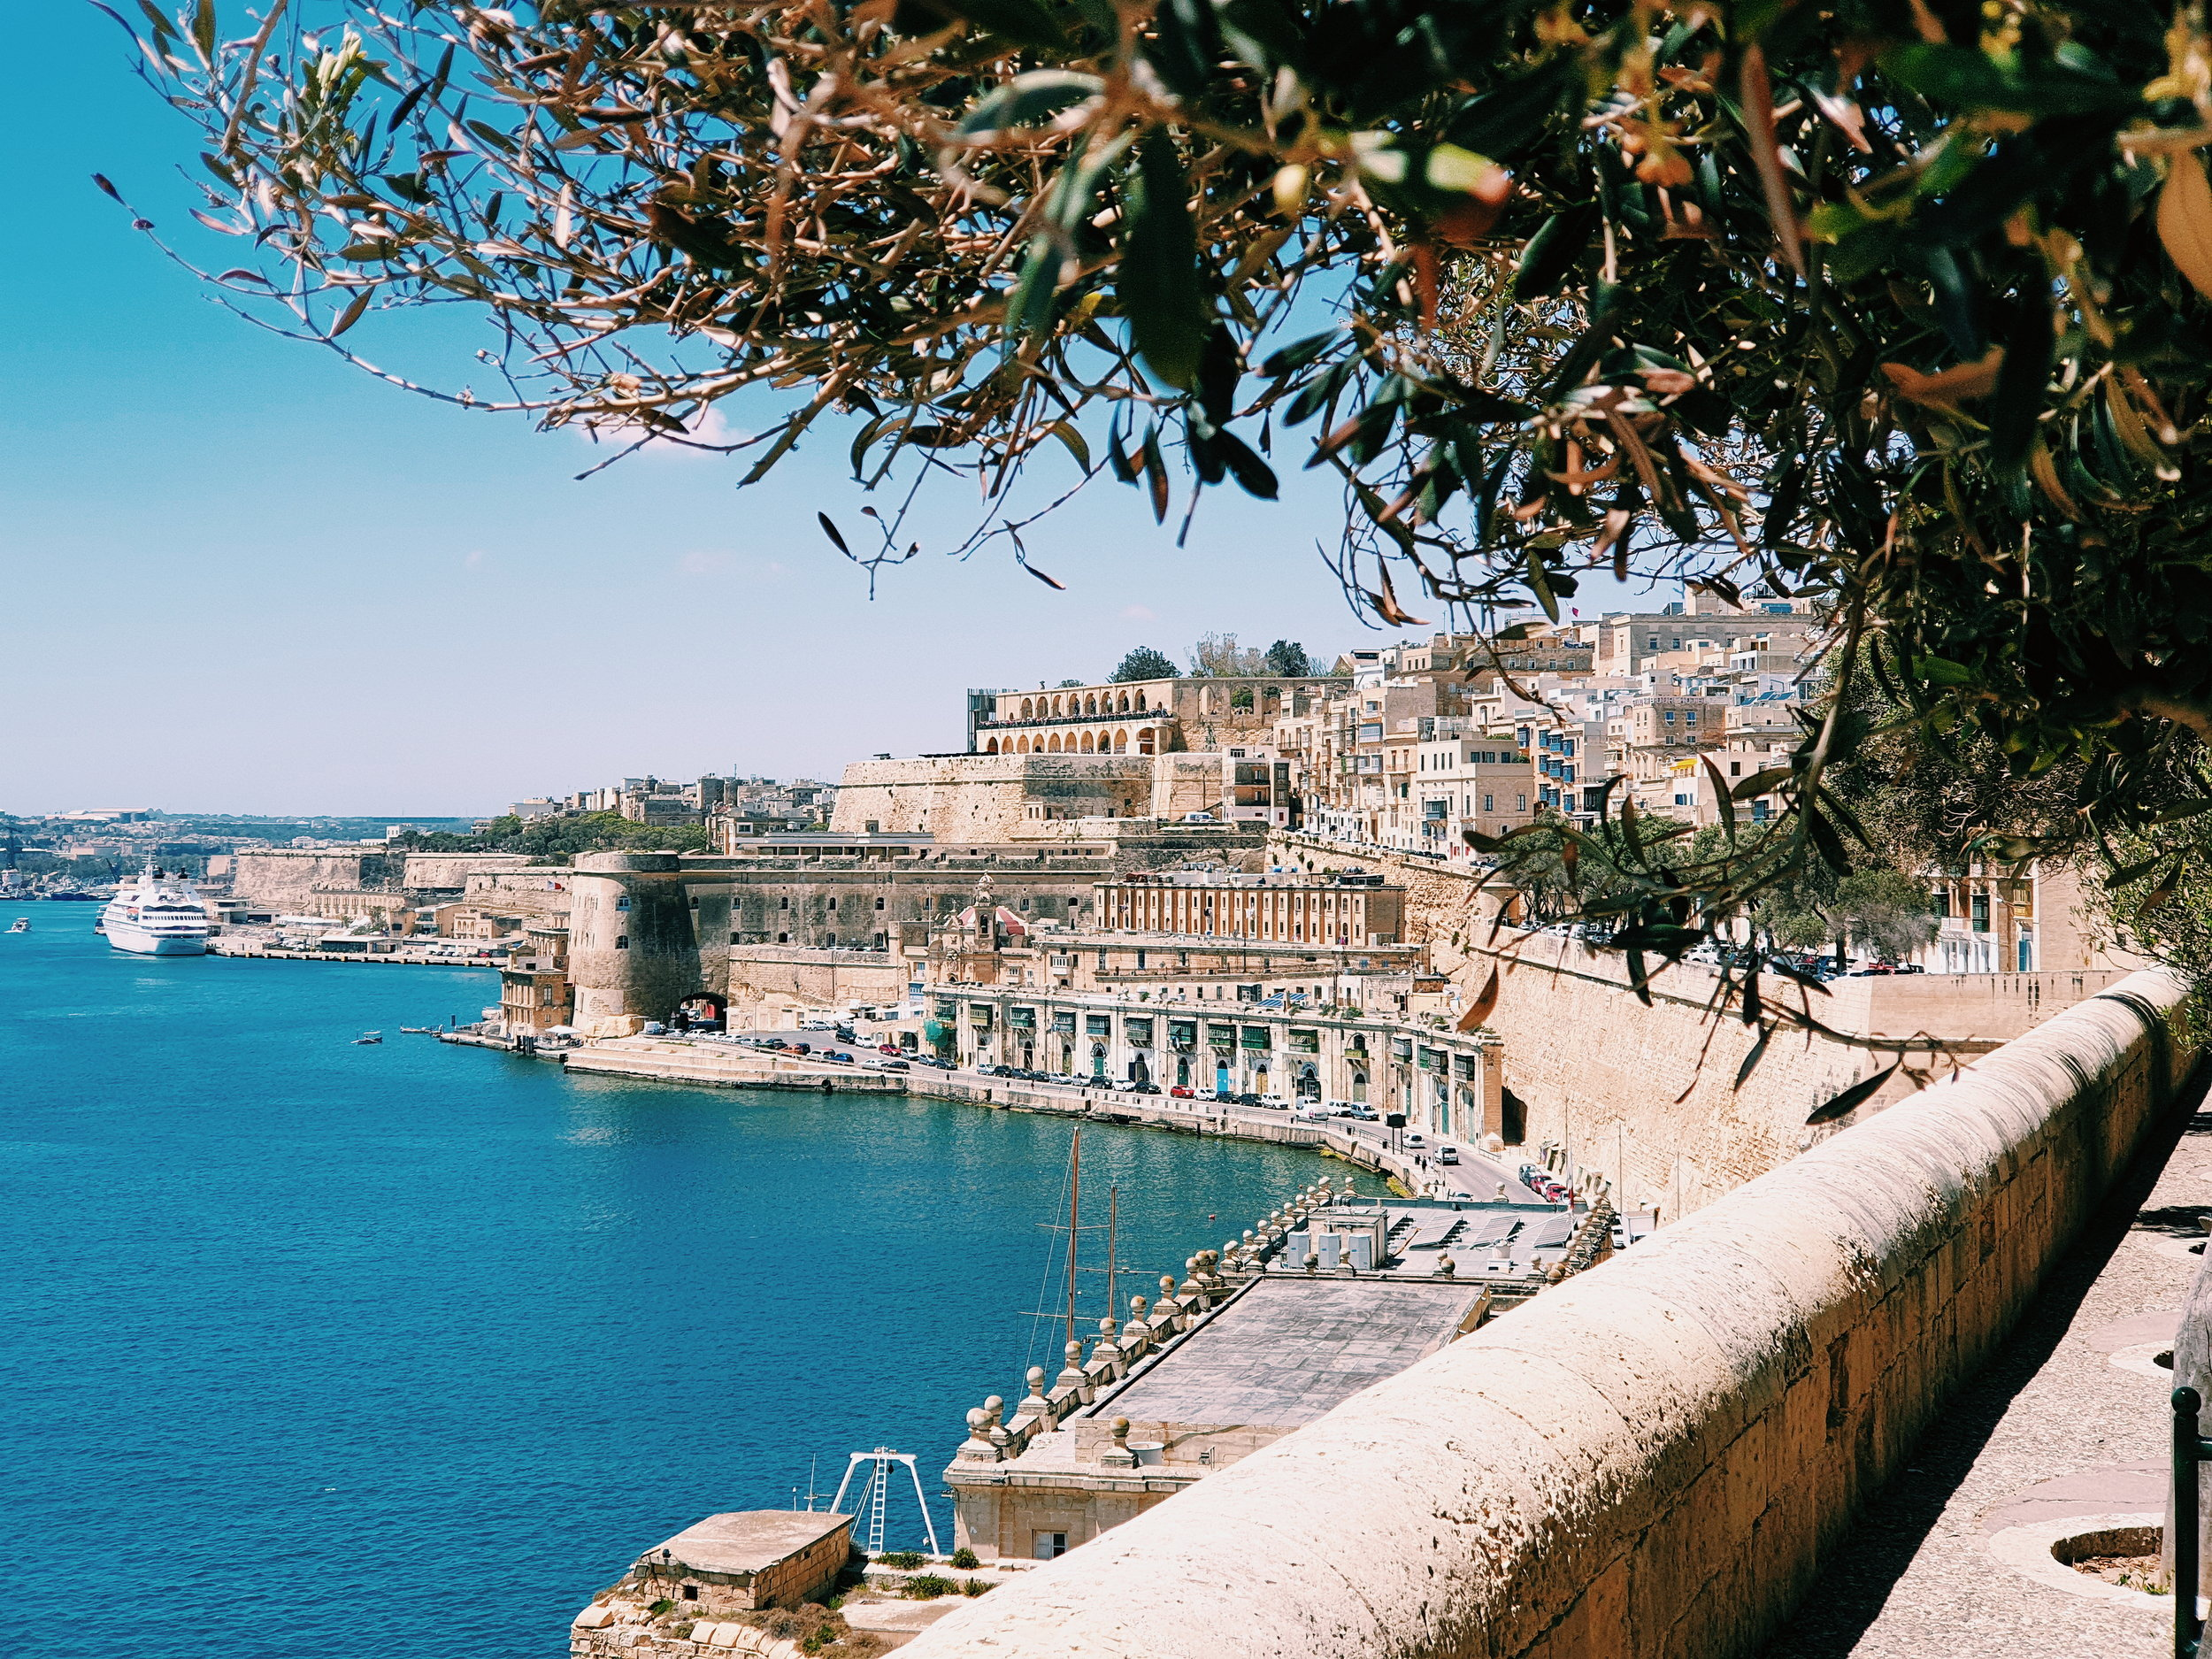 An Ocean view from the corner of Lower Barrakka Gardens in Valletta, Malta